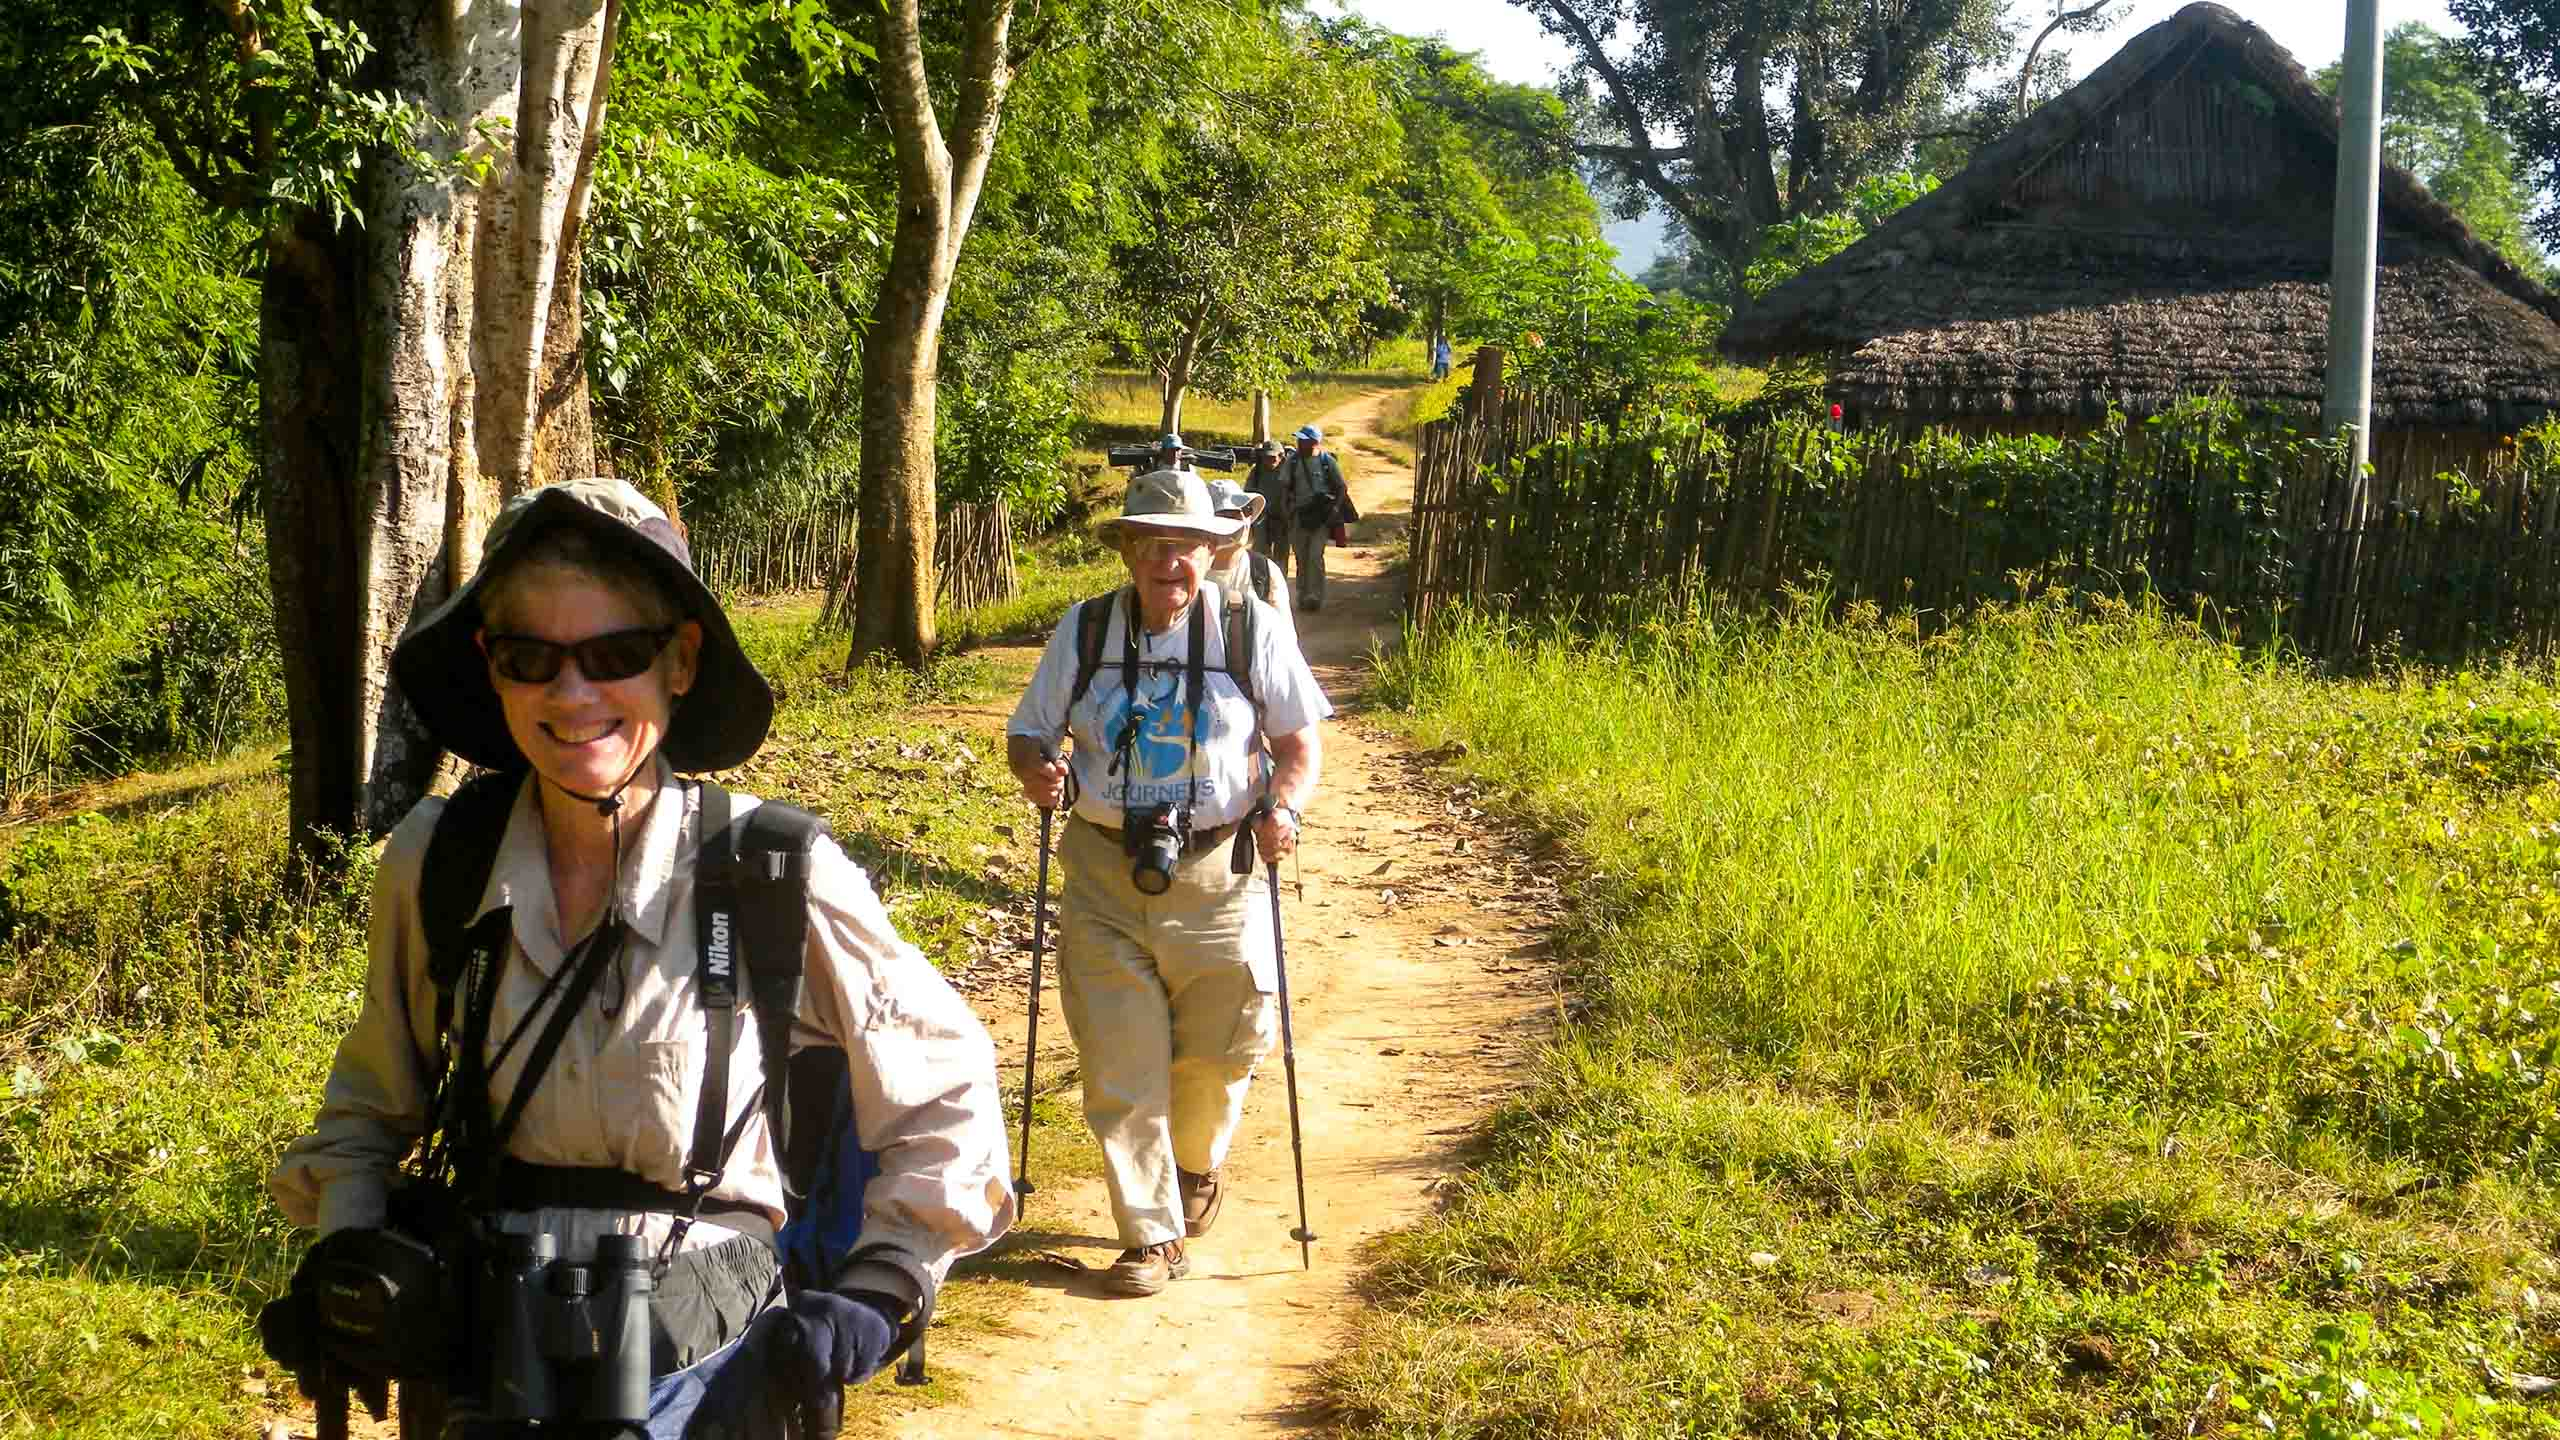 Travel group hikes through Nepal field